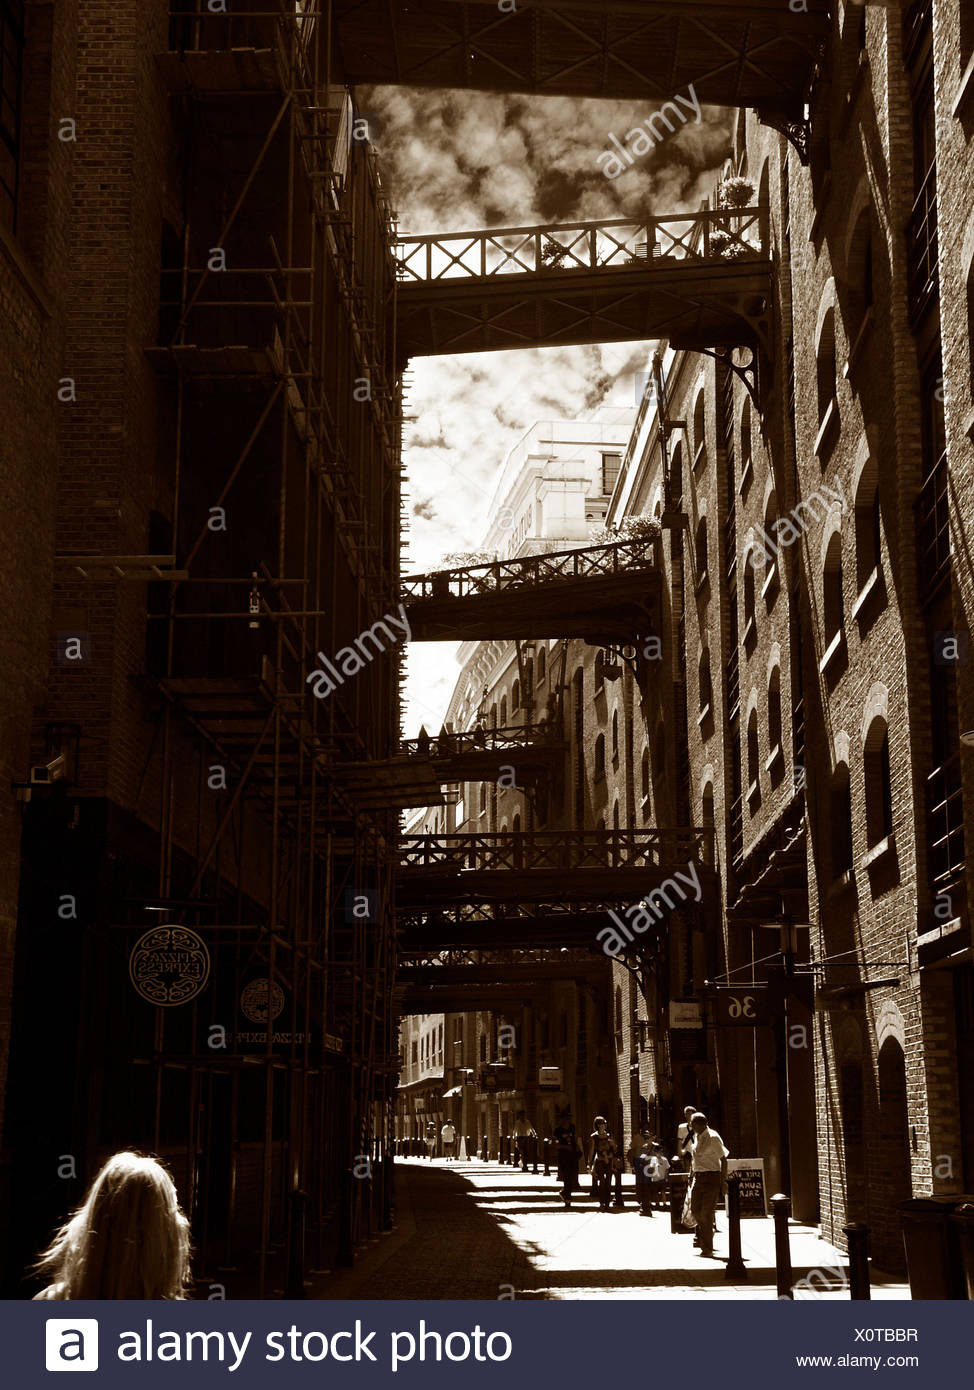 old londen - Stock Image